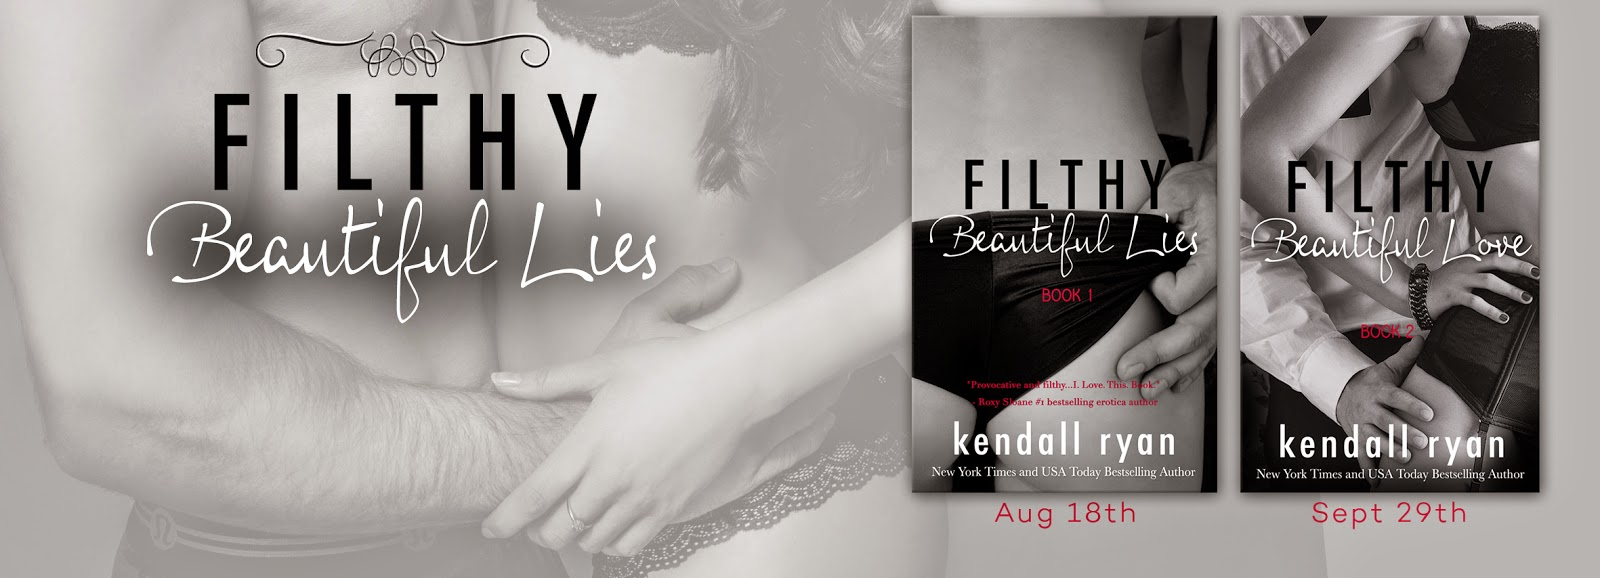 Kendall Ryan Libros Filthy Beautiful Lies By Kendall Ryan Review Blitz And Giveaway